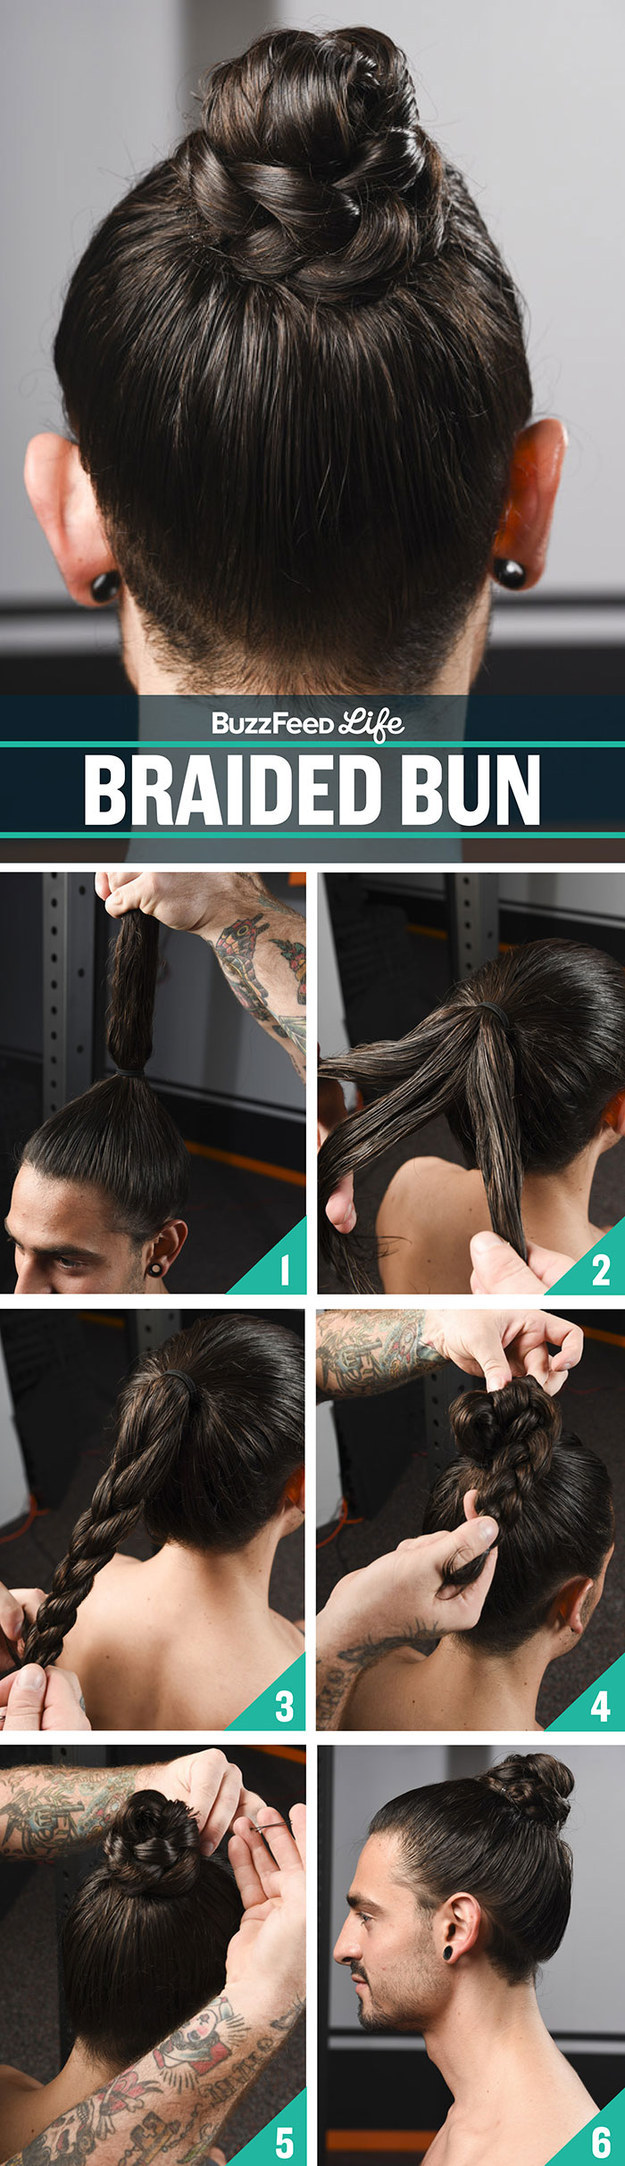 Groovy 8 Ways To Style Your Hair For The Gym That Are Actually Awesome Short Hairstyles Gunalazisus